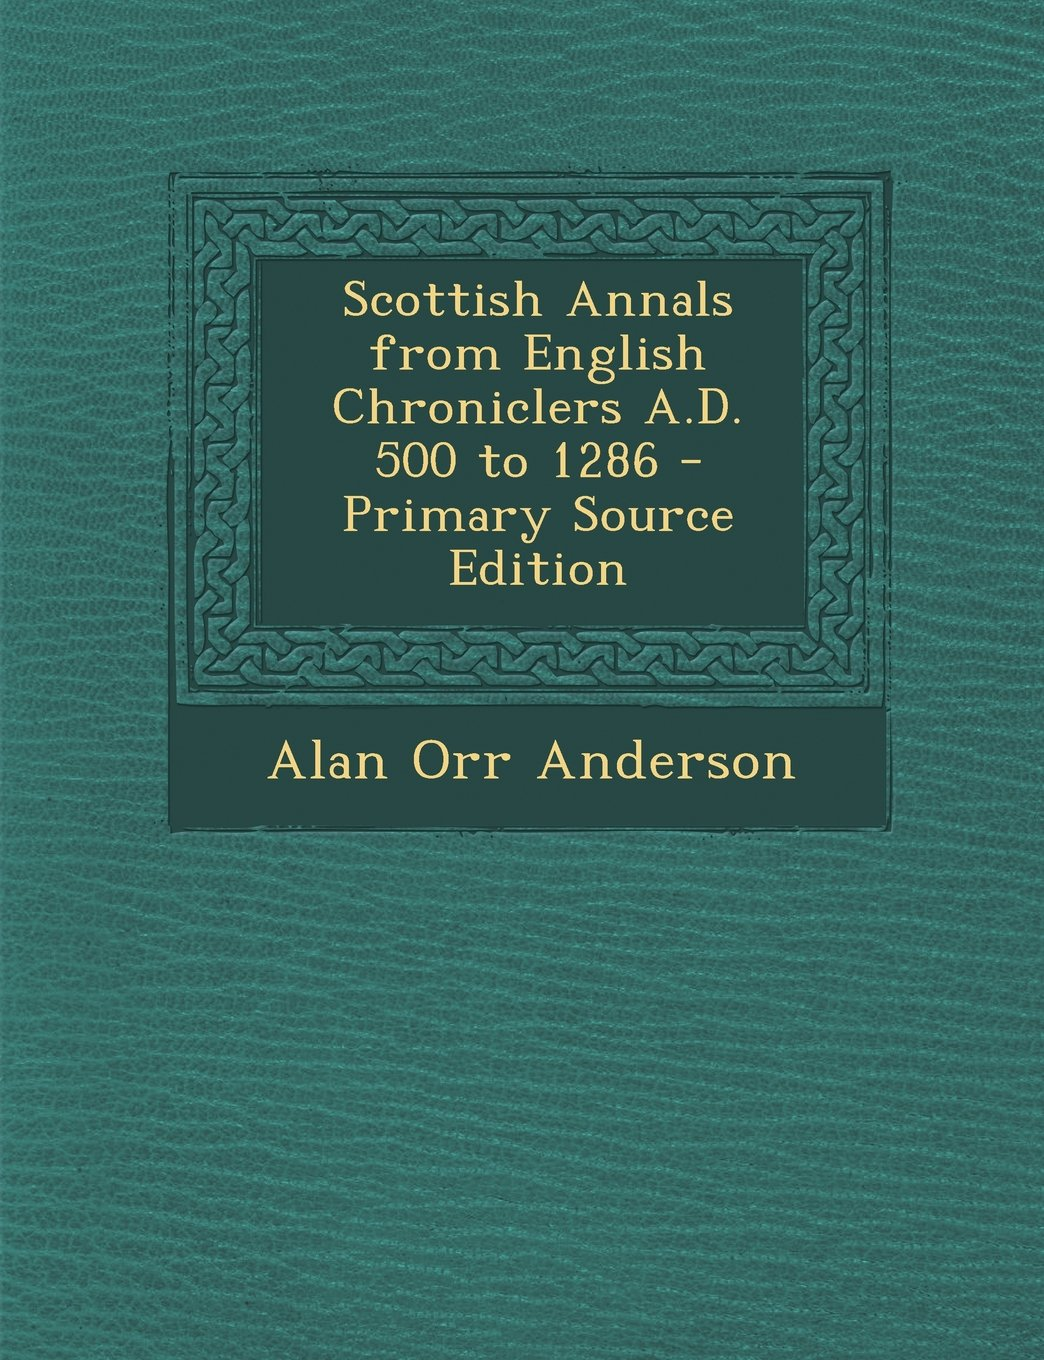 Read Online Scottish Annals from English Chroniclers A.D. 500 to 1286 - Primary Source Edition ebook